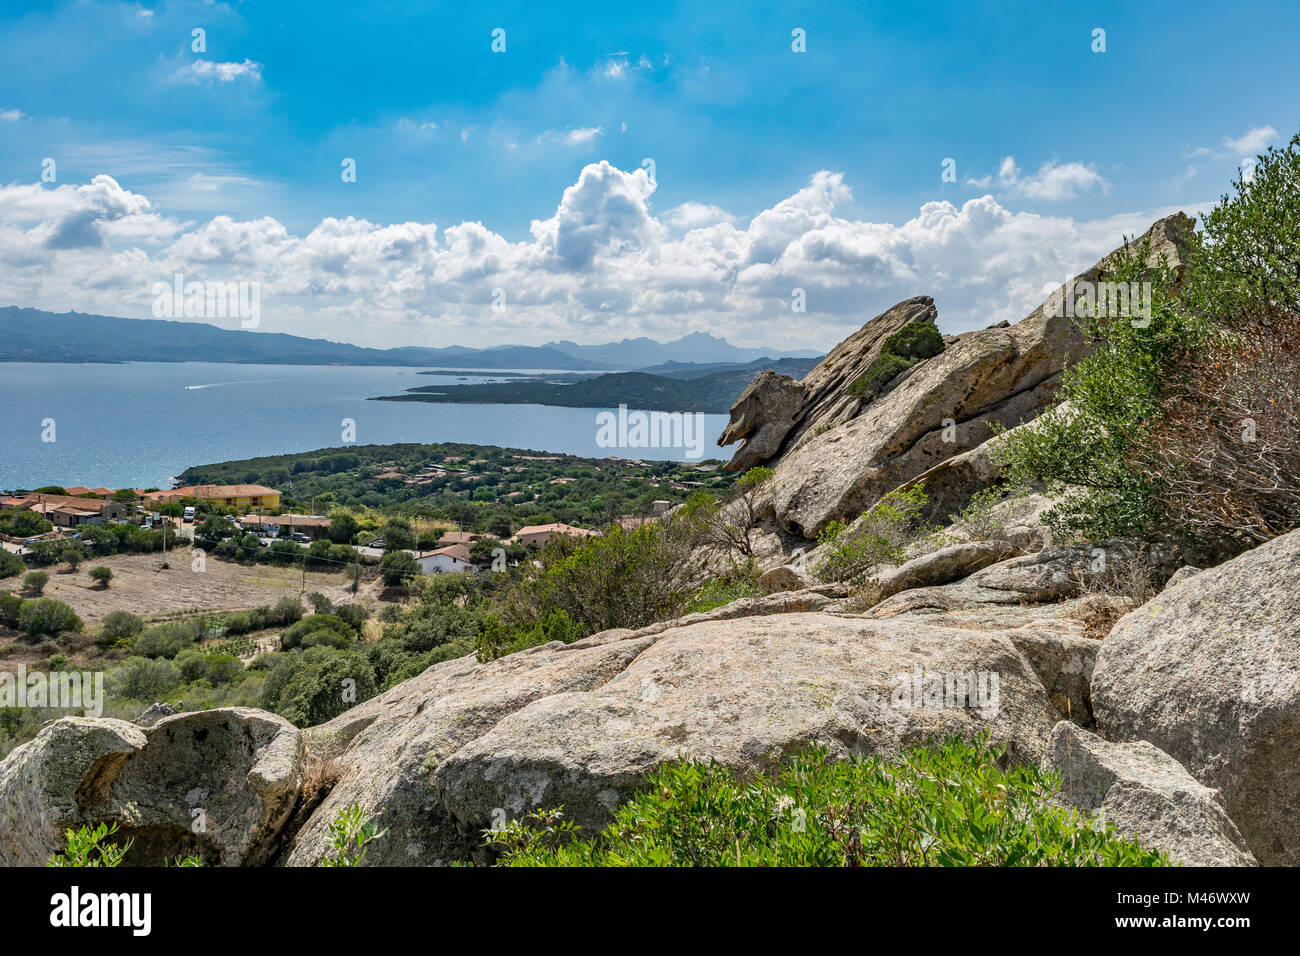 Taken on the path to Capo D'orso (Bear Rock) in northern Sardinia - Stock Image